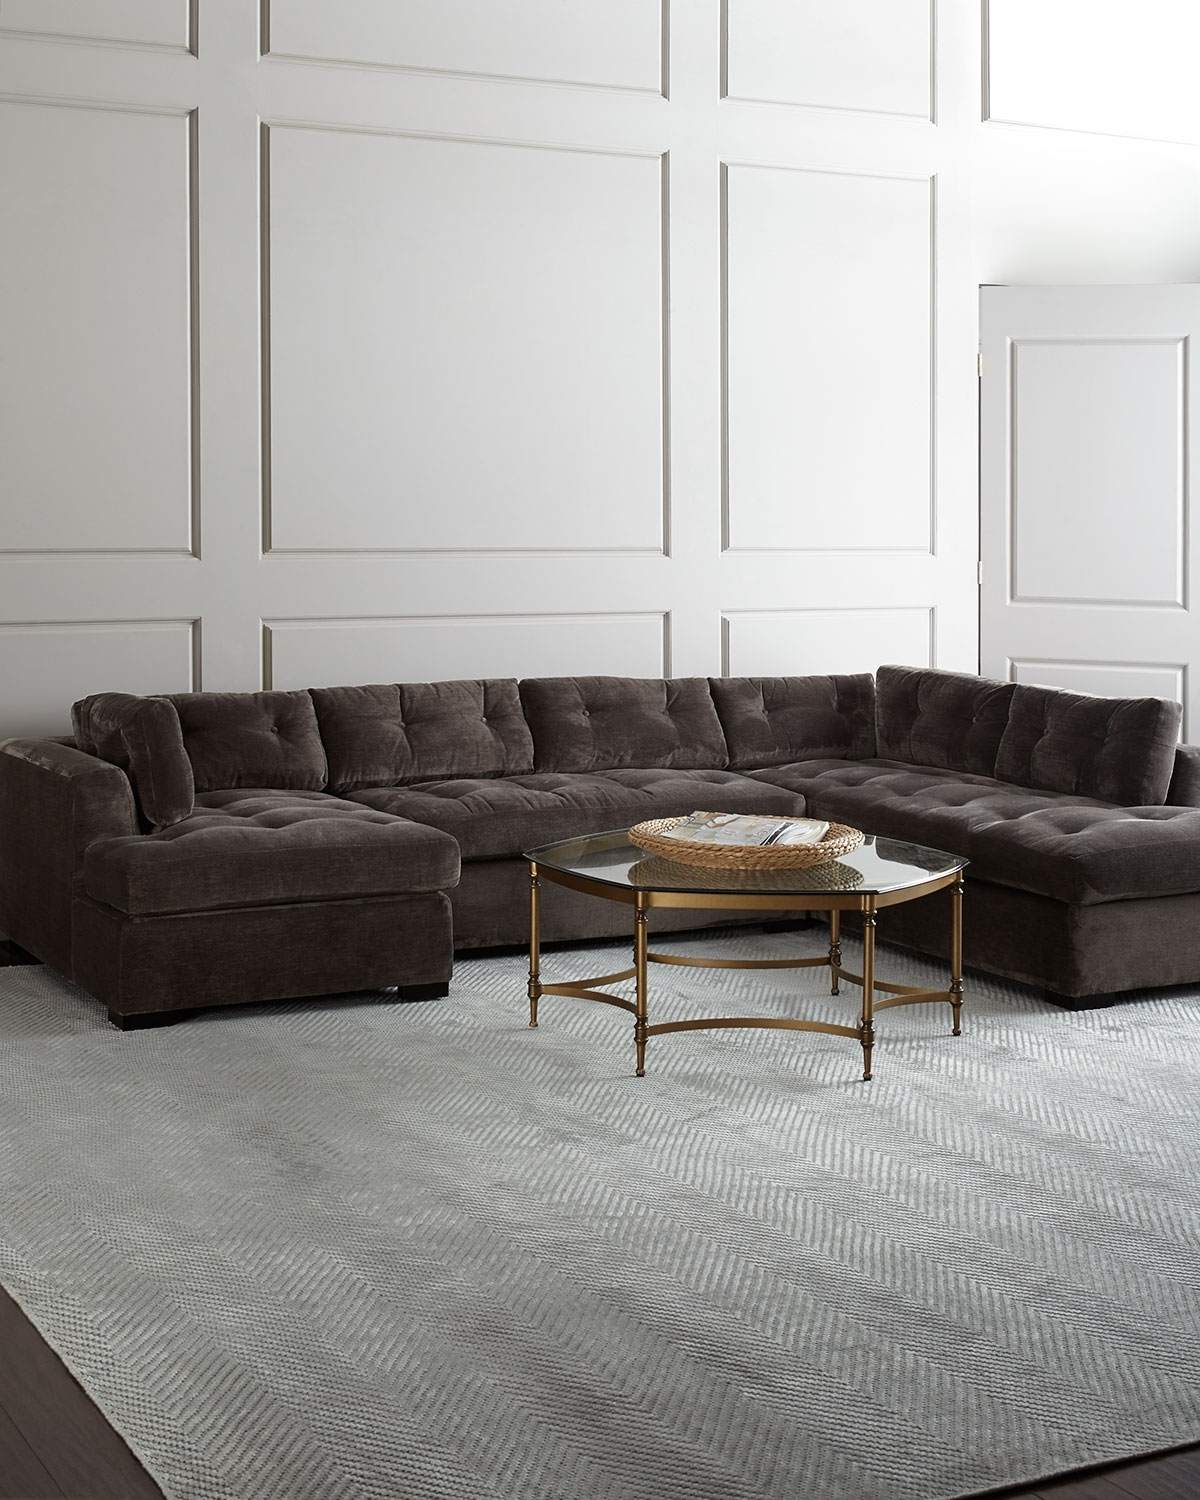 3 Chaise Sectional With Regard To Malbry Point 3 Piece Sectionals With Laf Chaise (Image 1 of 25)